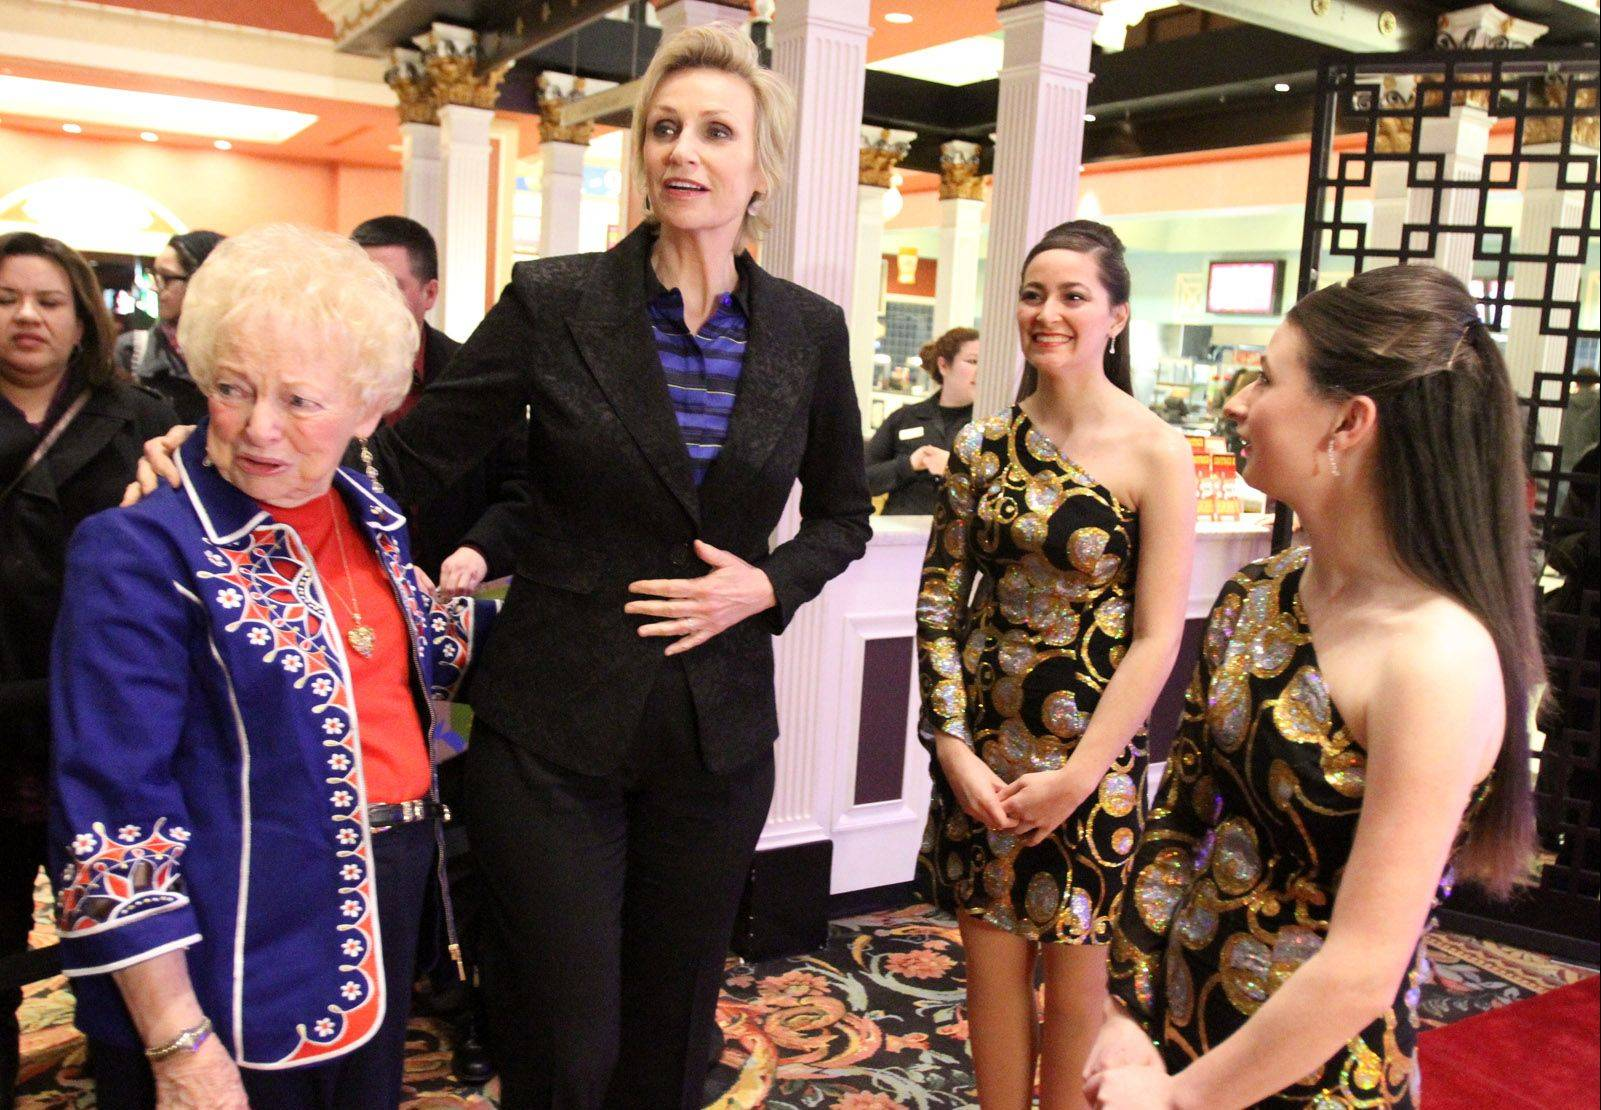 Rolling Meadows High School Show Choir members Amanda Torres and Korinne Yonan greet actress Jane Lynch and her Aunt Marge Lynch at the Chicago Film Critics Association 24th Annual Awards Show on Saturday at Muvico Theaters in Rosemont.